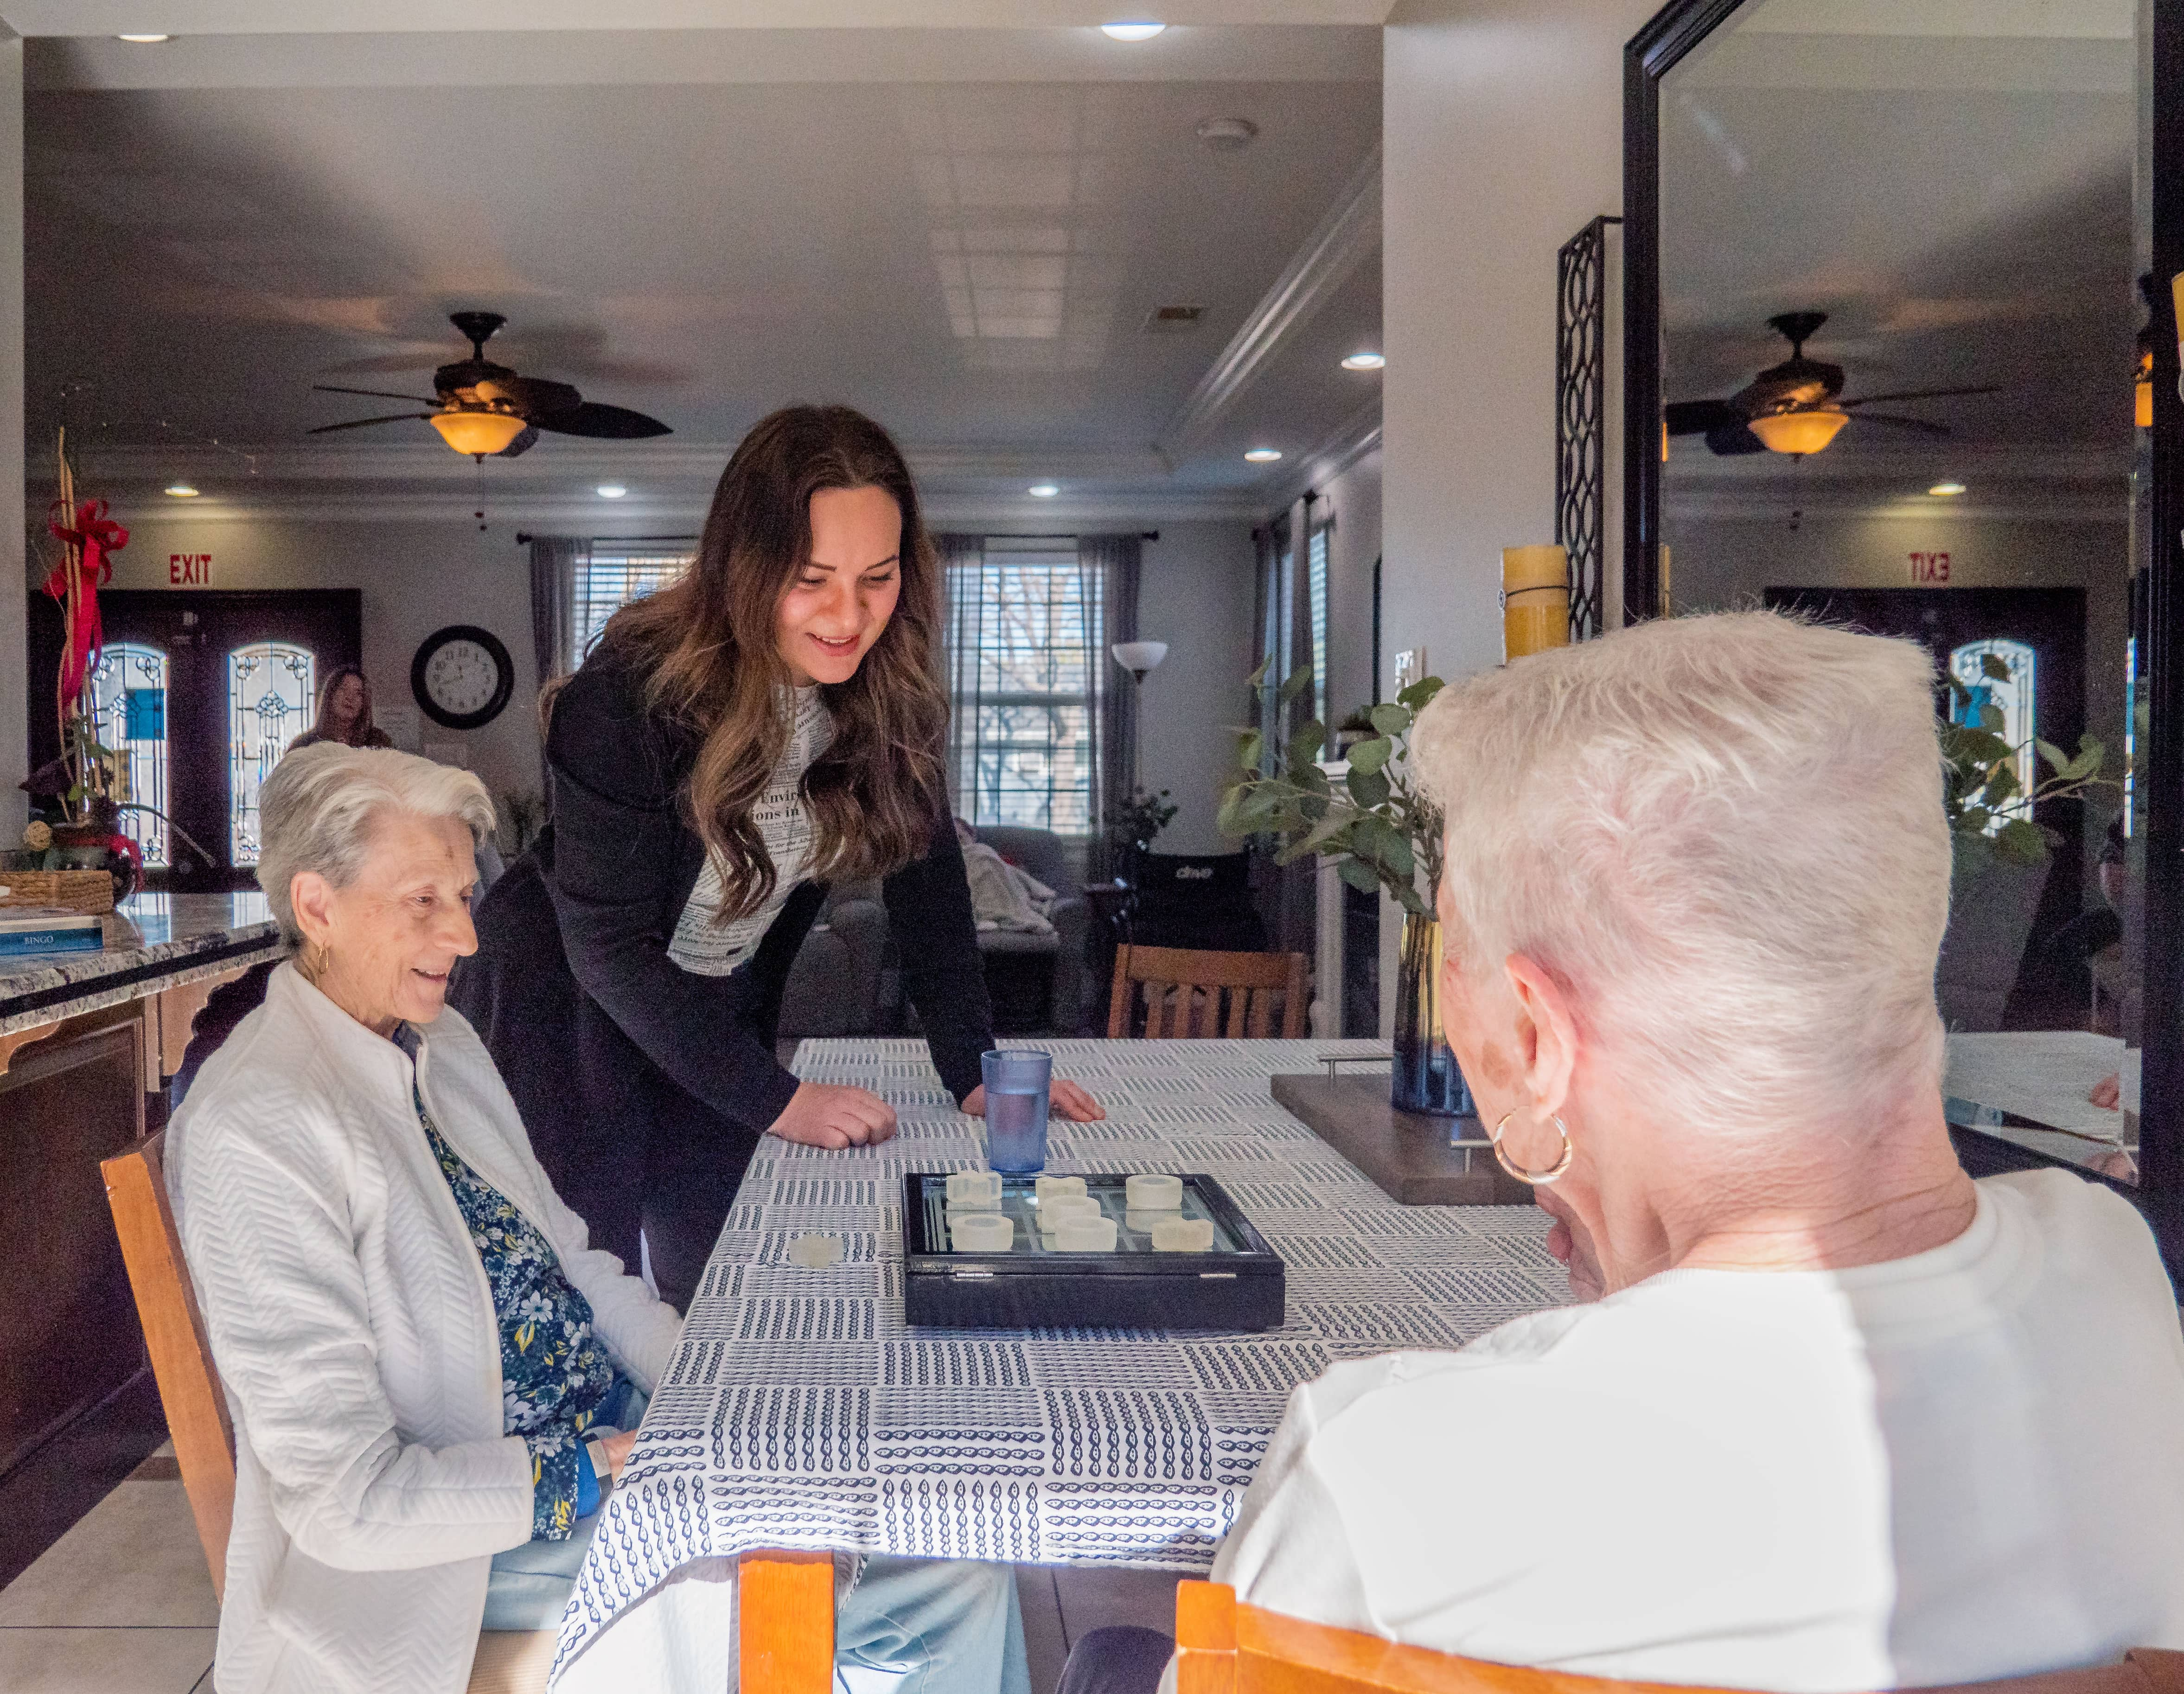 A woman watching two elderly residents play tic tac toe.